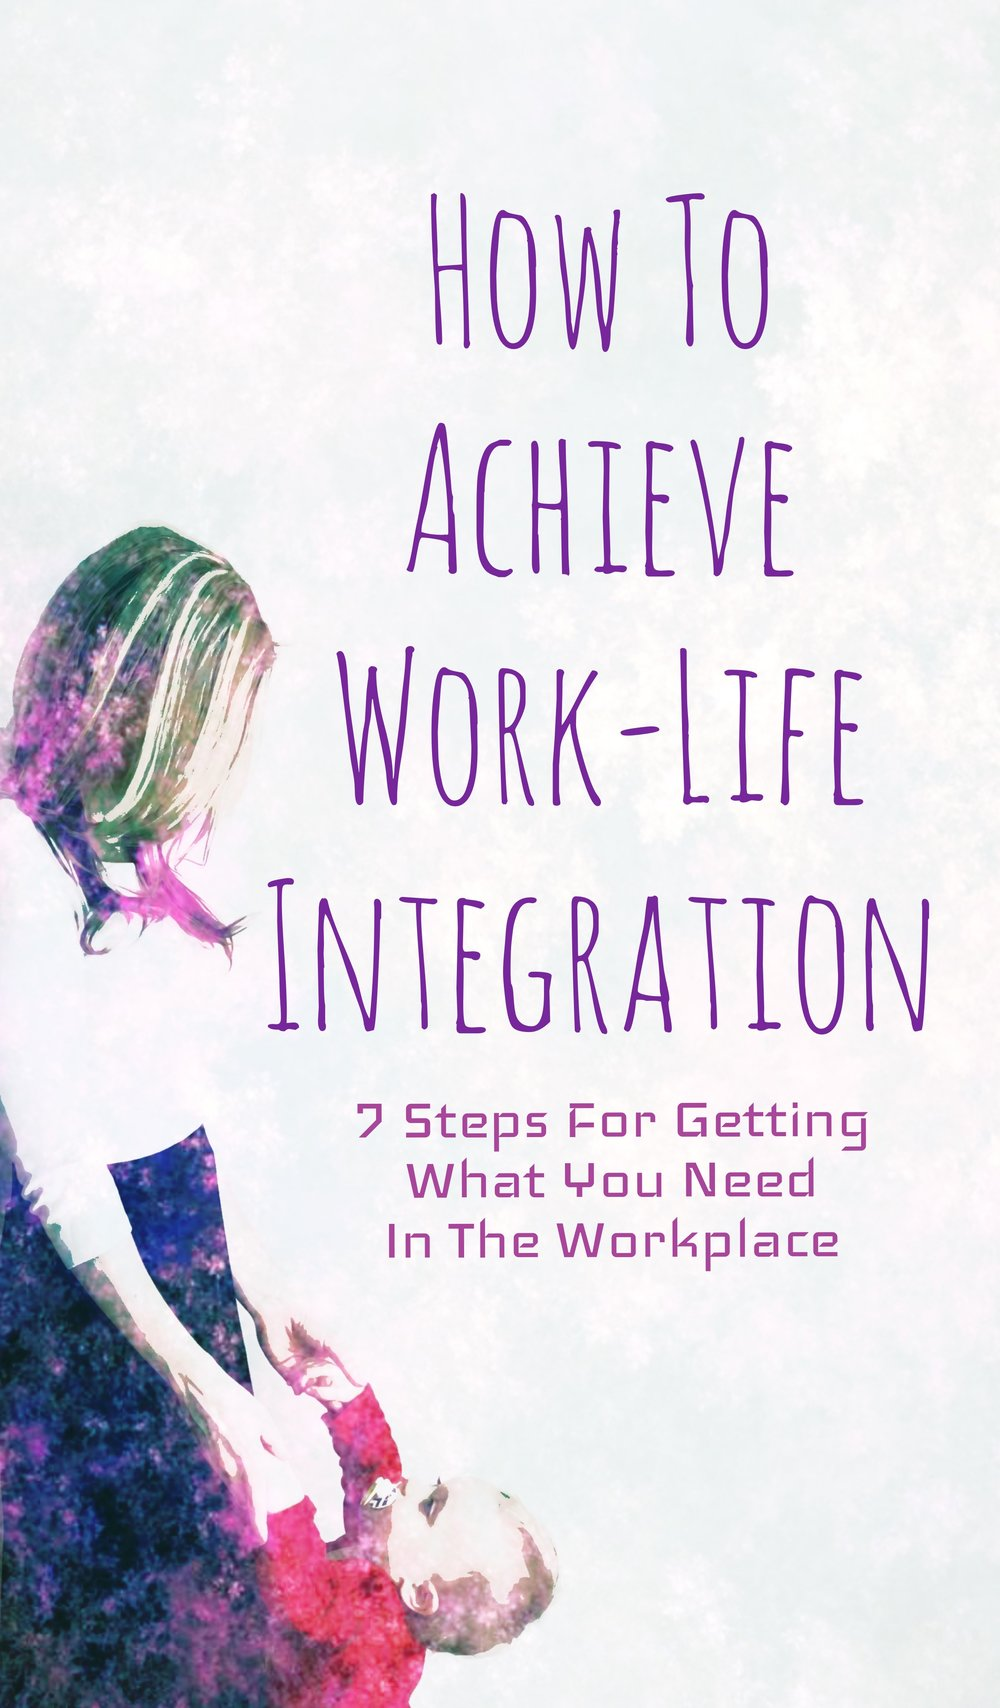 How To Achieve Work-Life Integration. 7 Steps For Getting What You Need In The Workplace. Going Back To Work After Having Kids. How To Be A Working Mom. Working Mom Struggles. How to work part time as a new mom. How to ask your boss to reduce your hours. How to ask your boss to go from full-time to part time. How To Have Work-Life Balance. How to get what you need from your employer. #working #mom #reduced #hours #part #time #work #life #balance